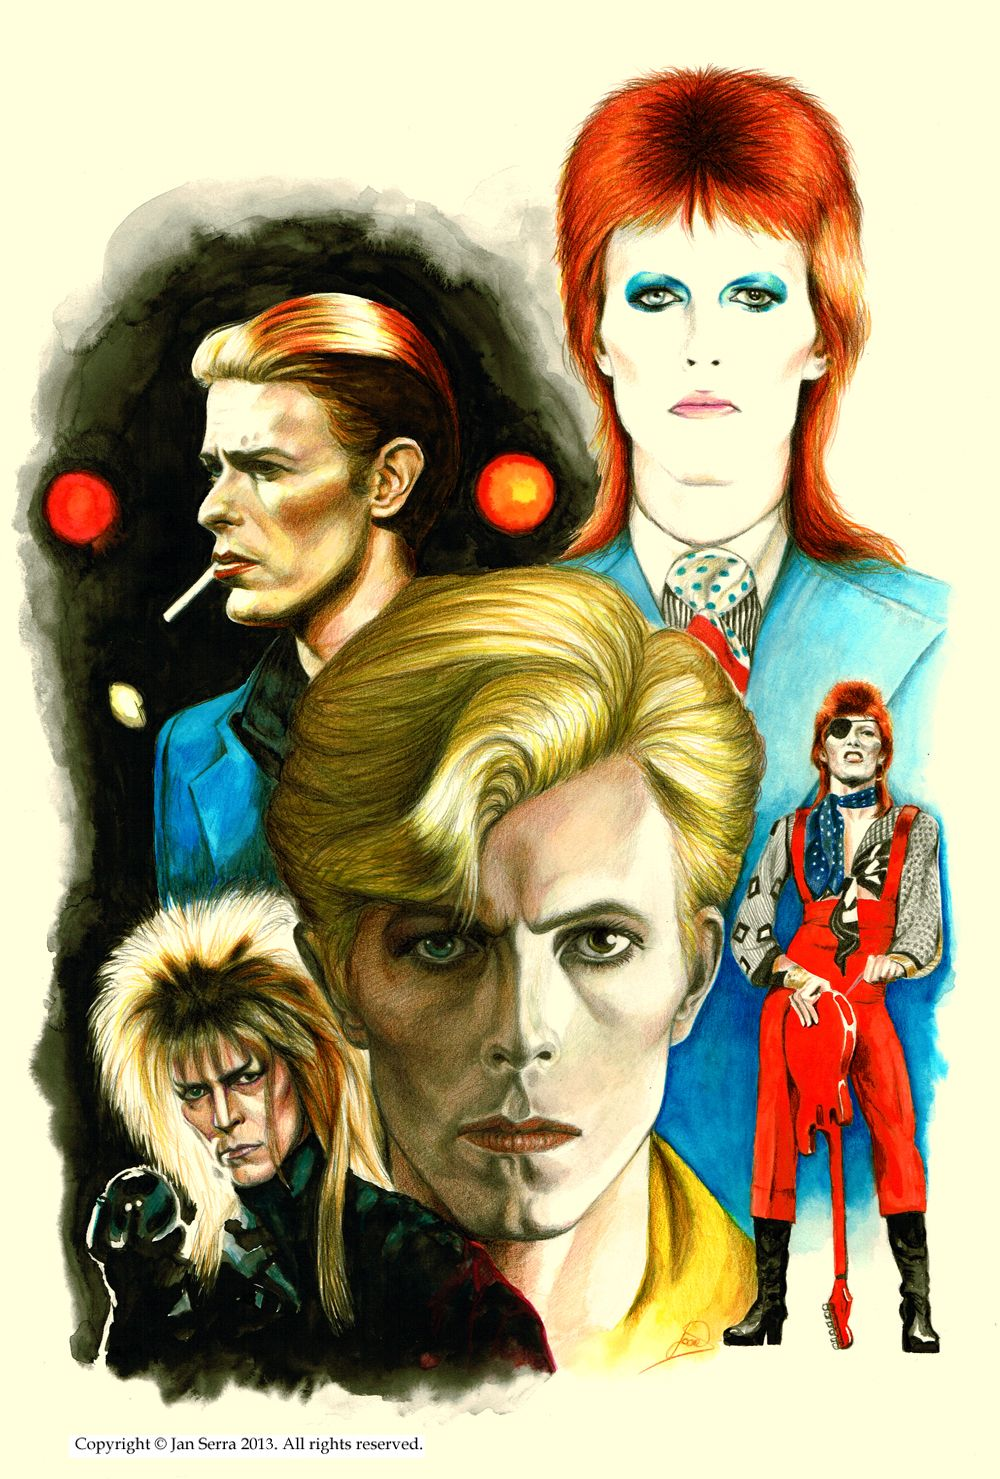 Pin by *☆*Rita*☆* on SHAWNEY | Pinterest | David bowie changes ...